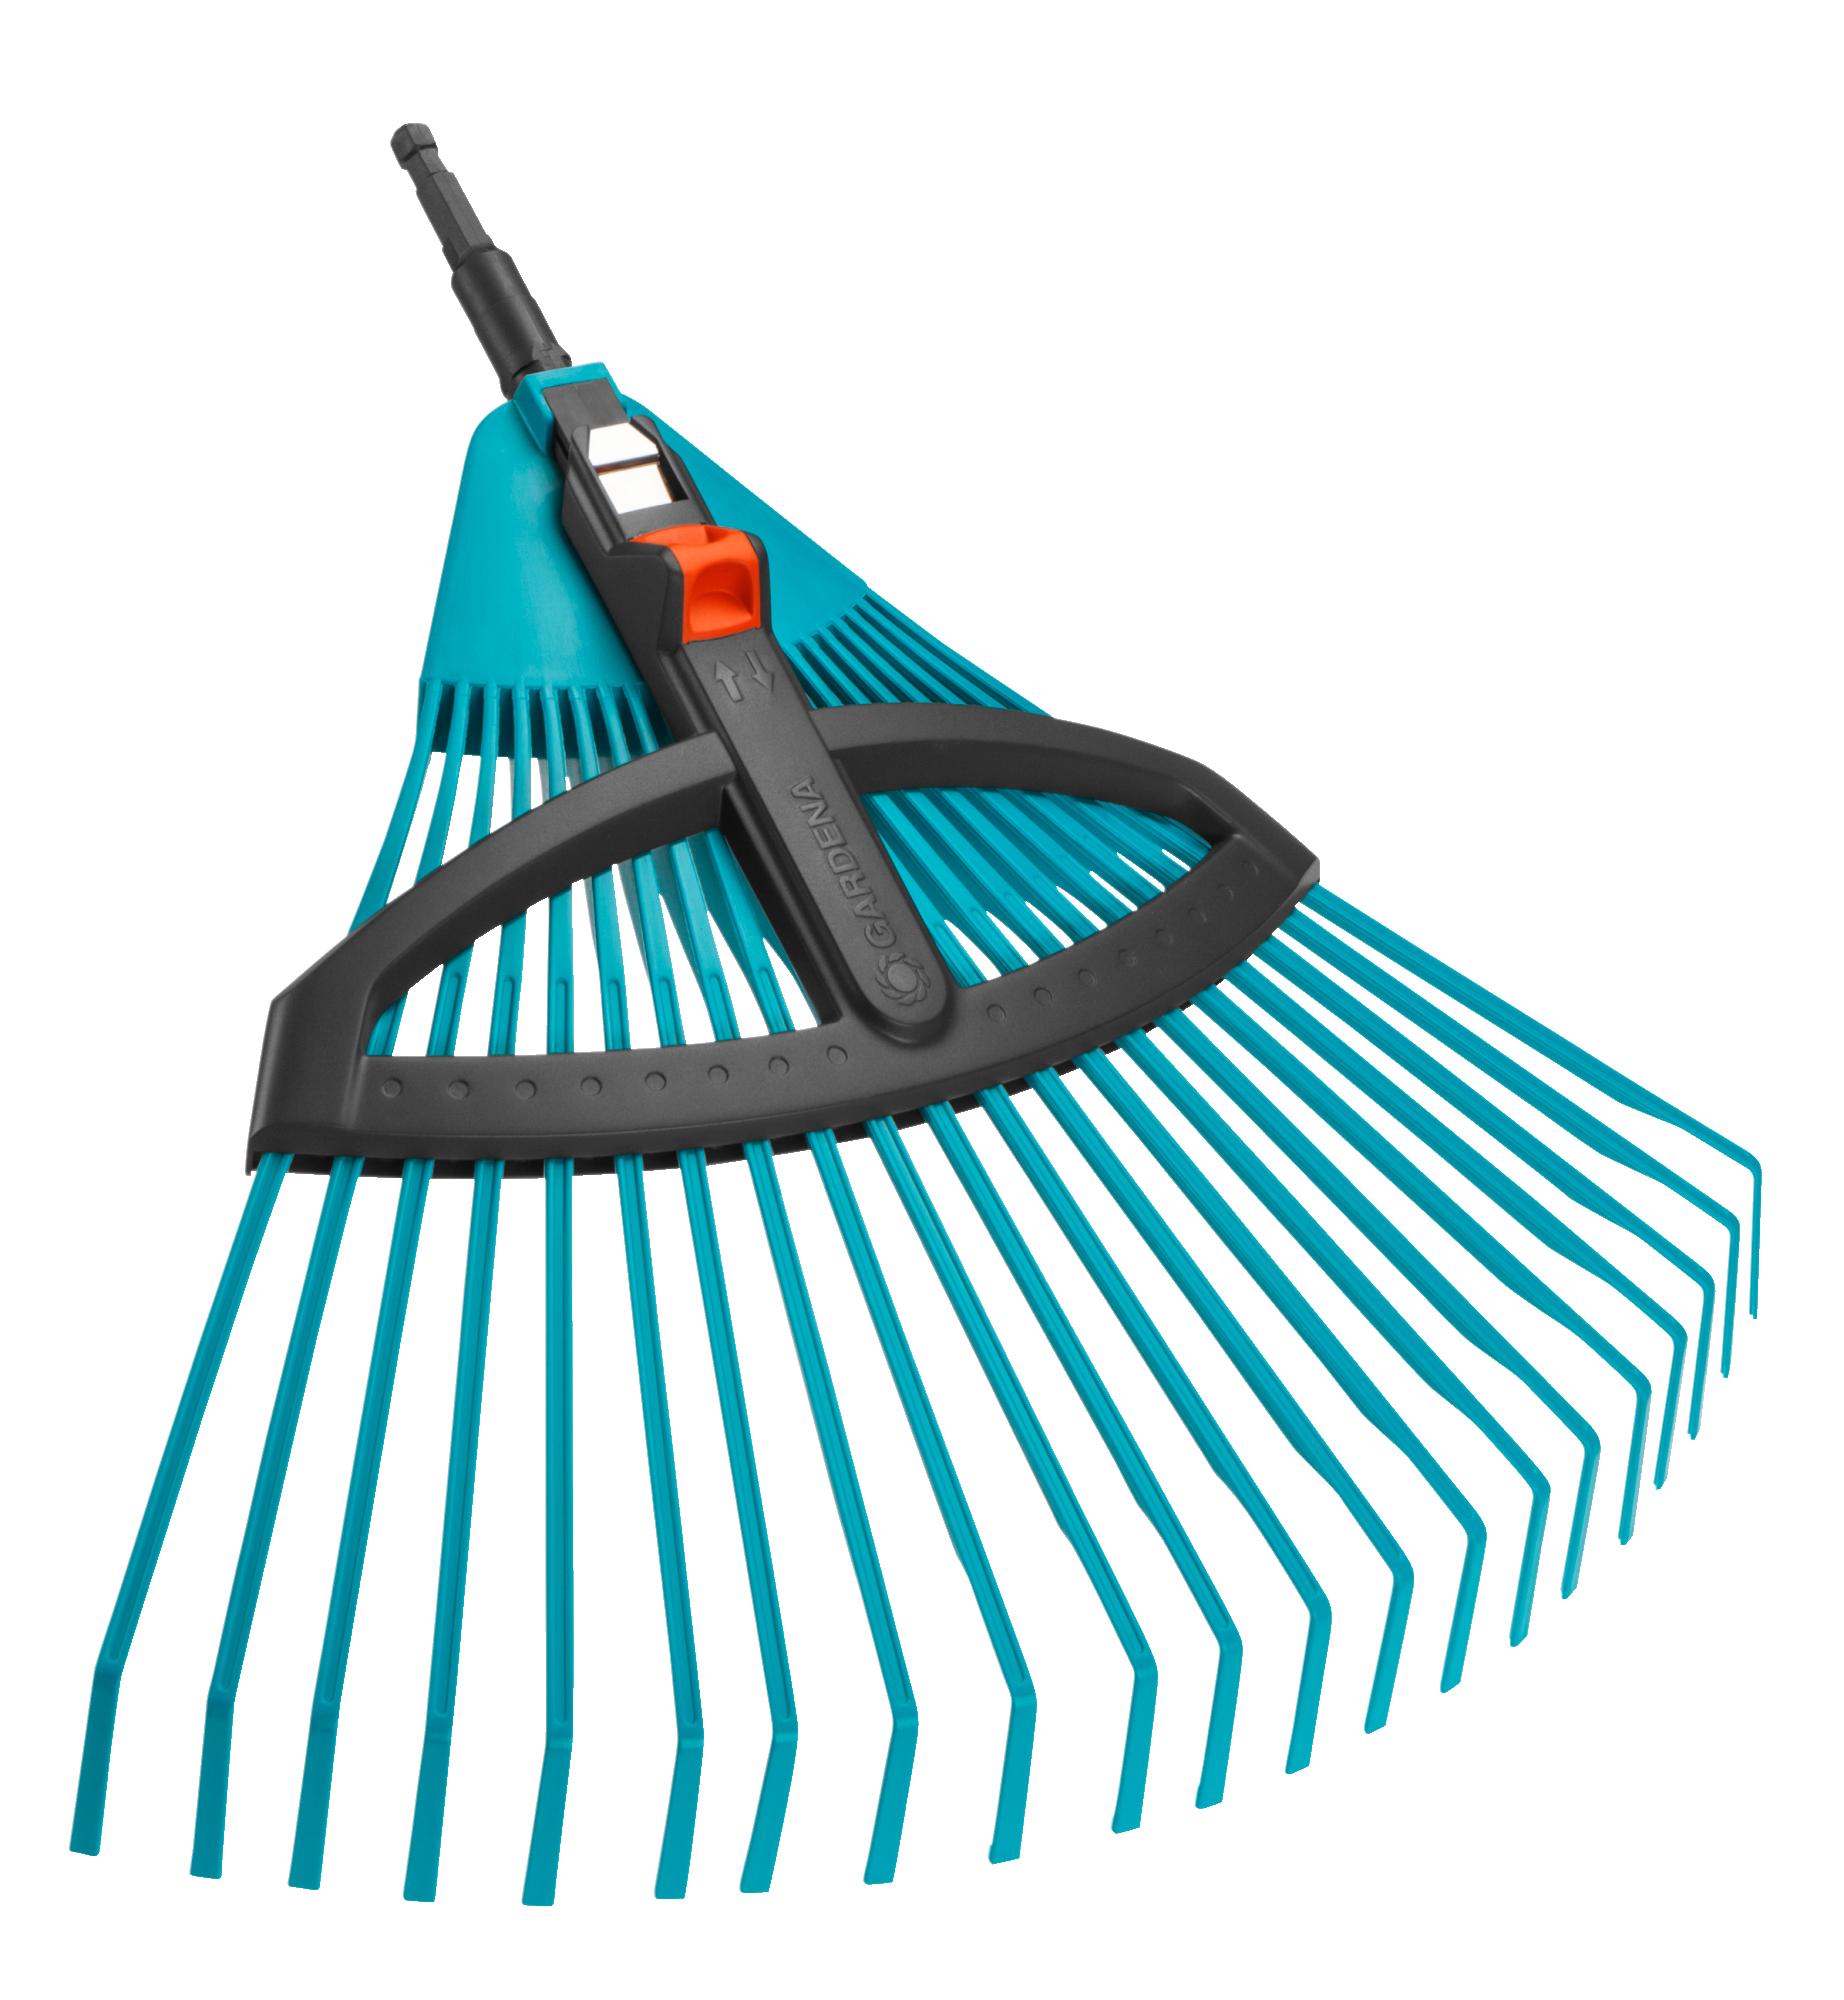 Shears clipart gardening rake. Gardena combisystem plastic adjustable